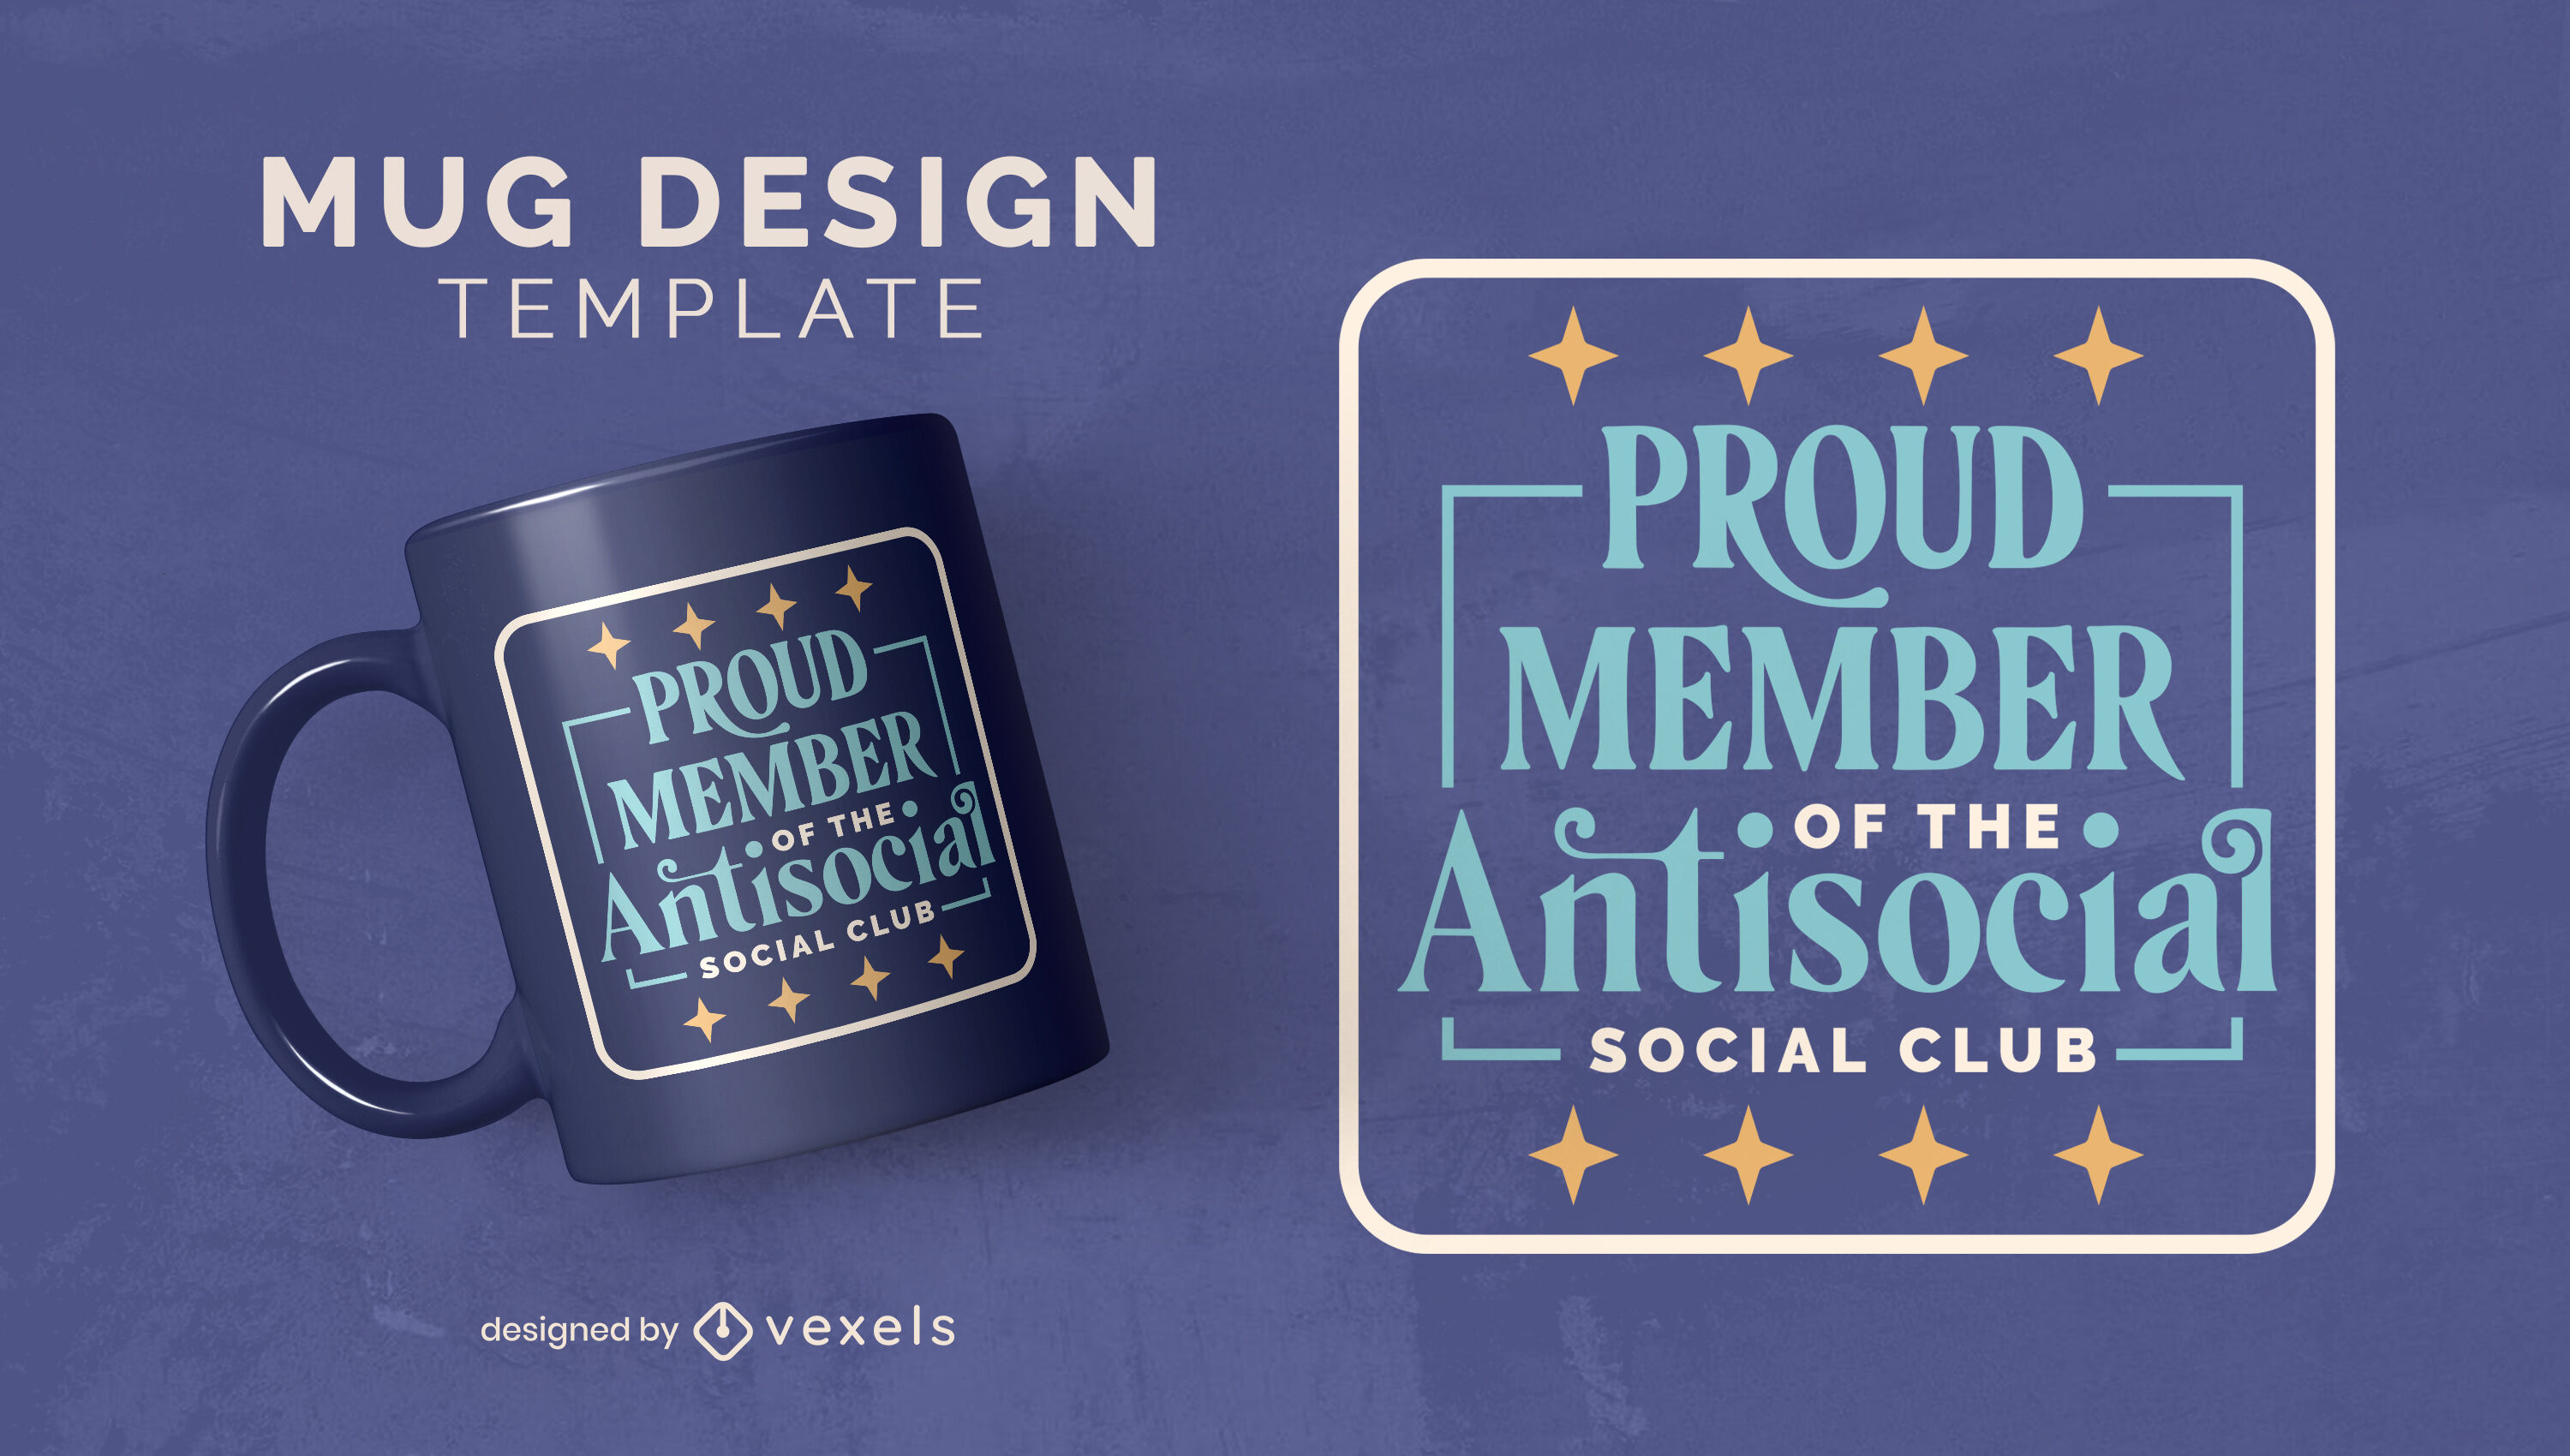 Antisocial club funny quote mug template